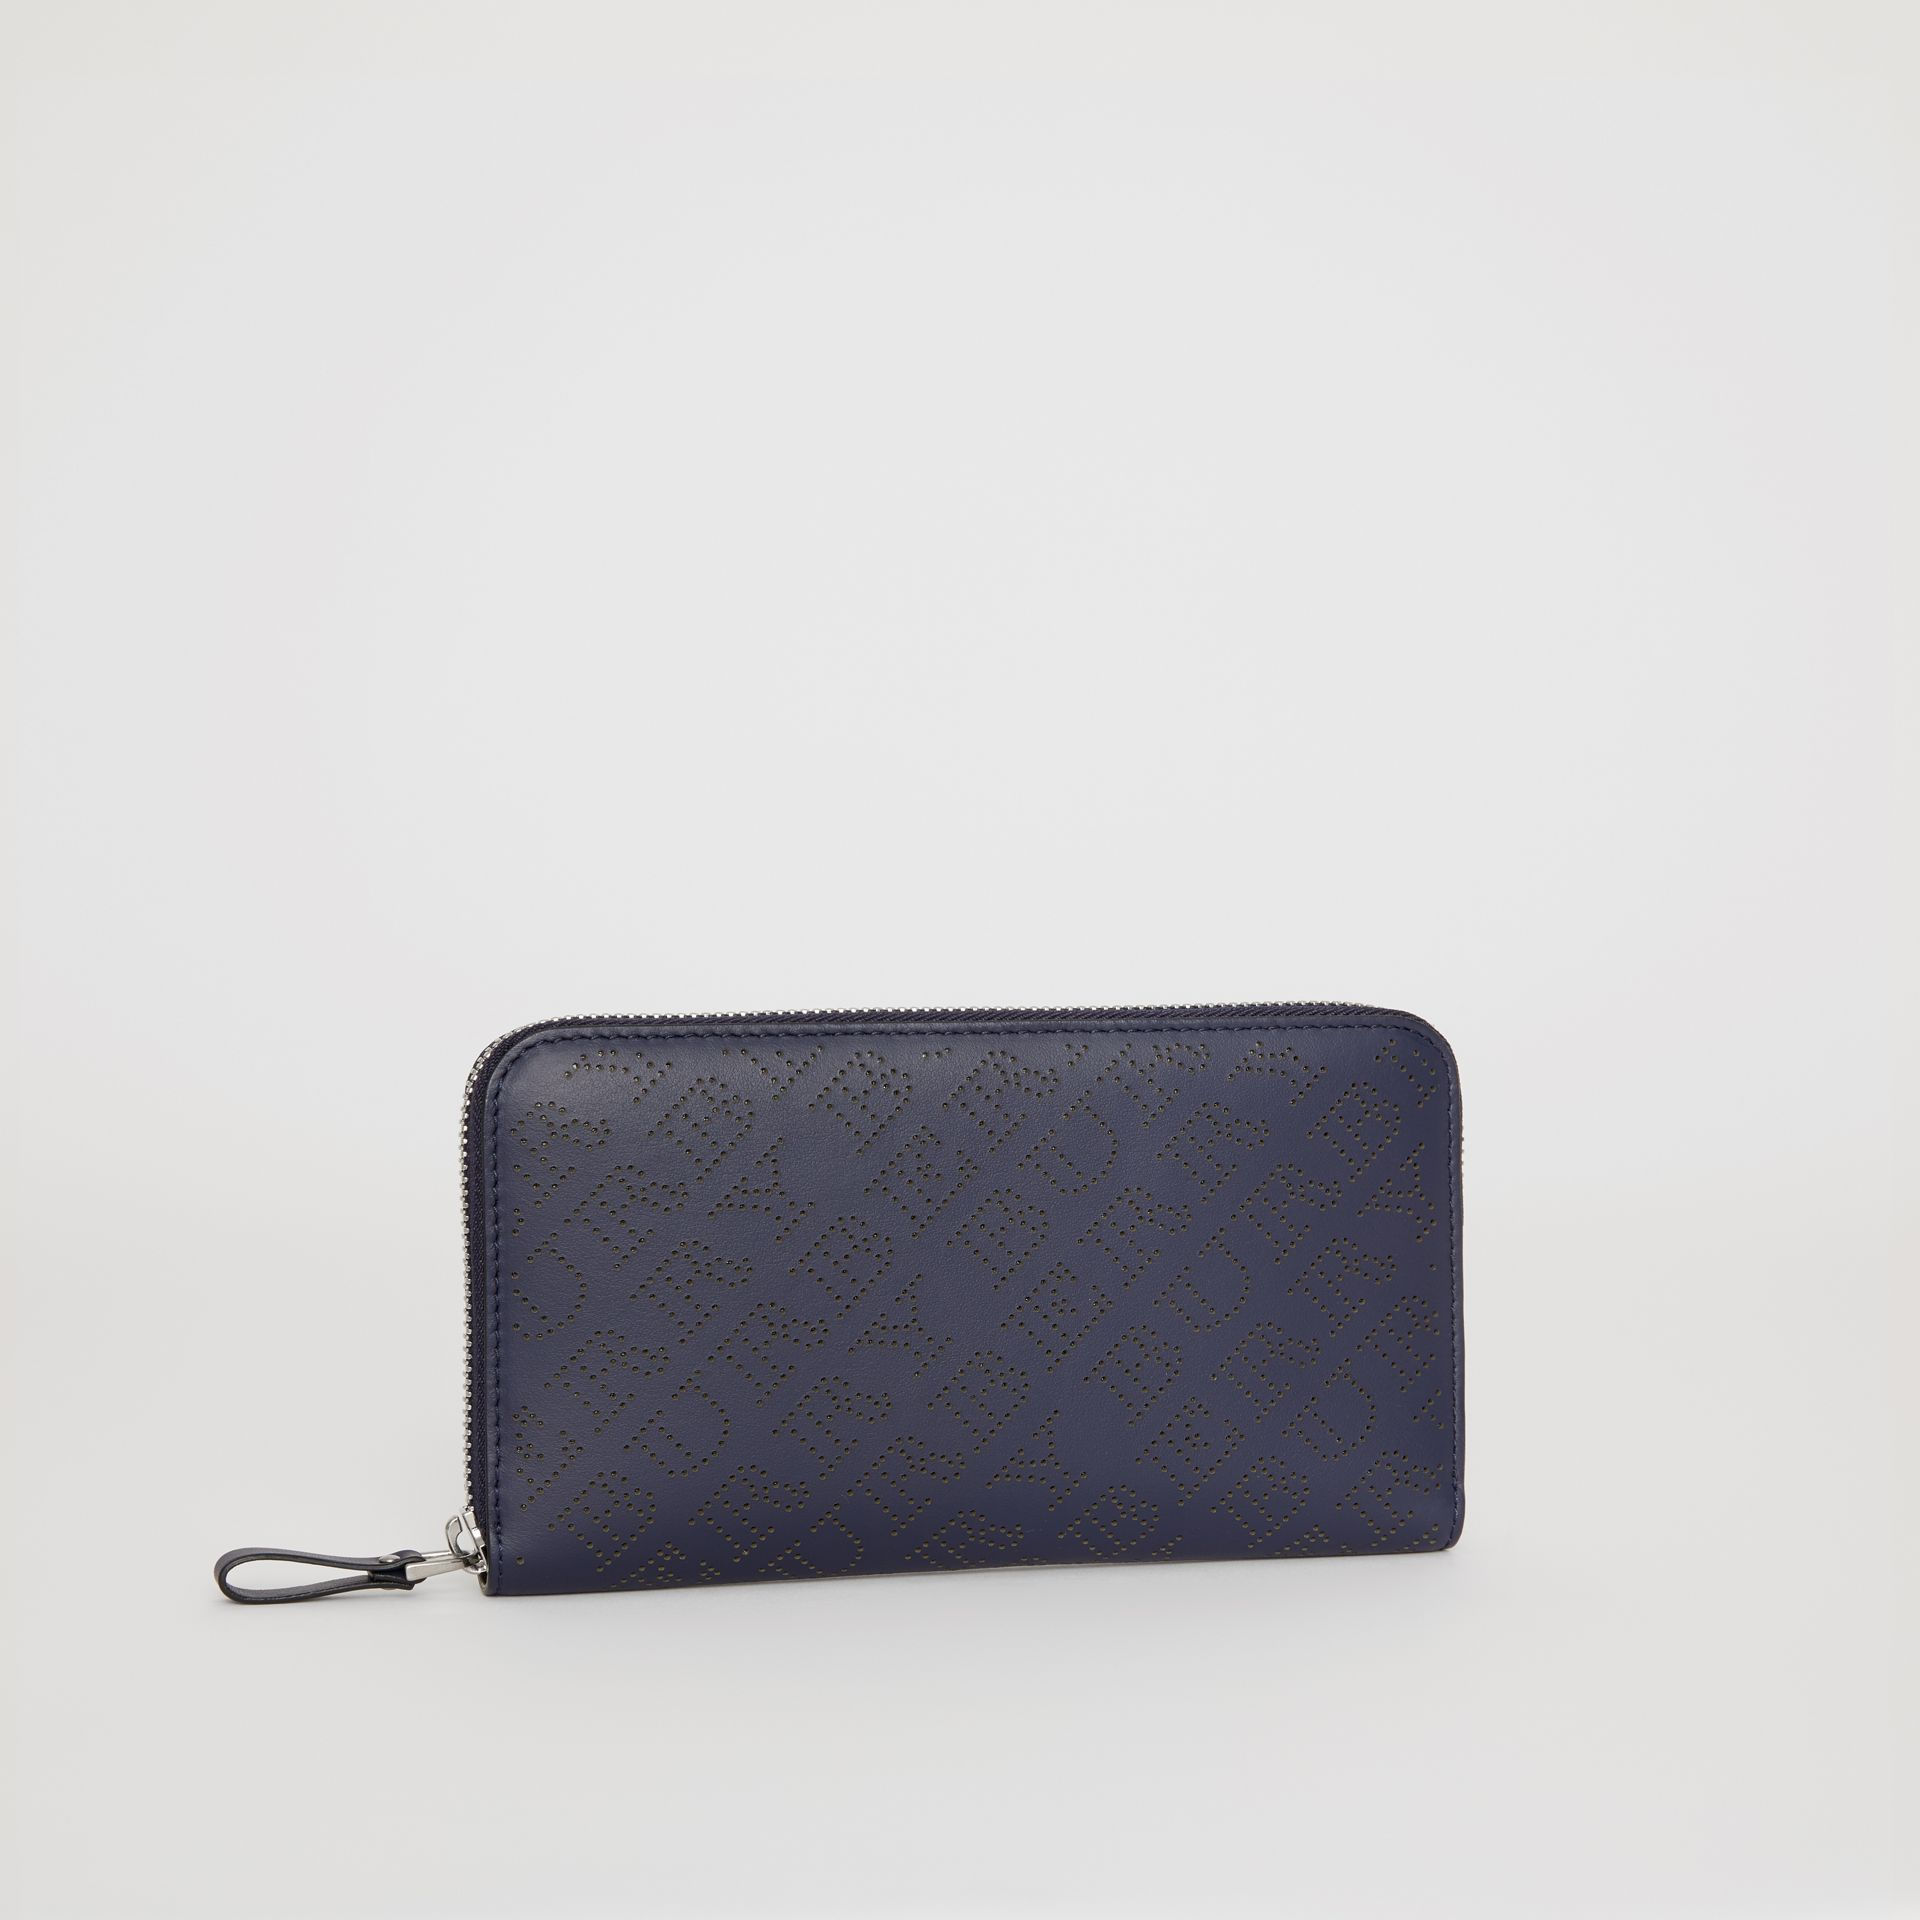 Perforated Leather Ziparound Wallet in Navy - Women | Burberry United States - gallery image 4